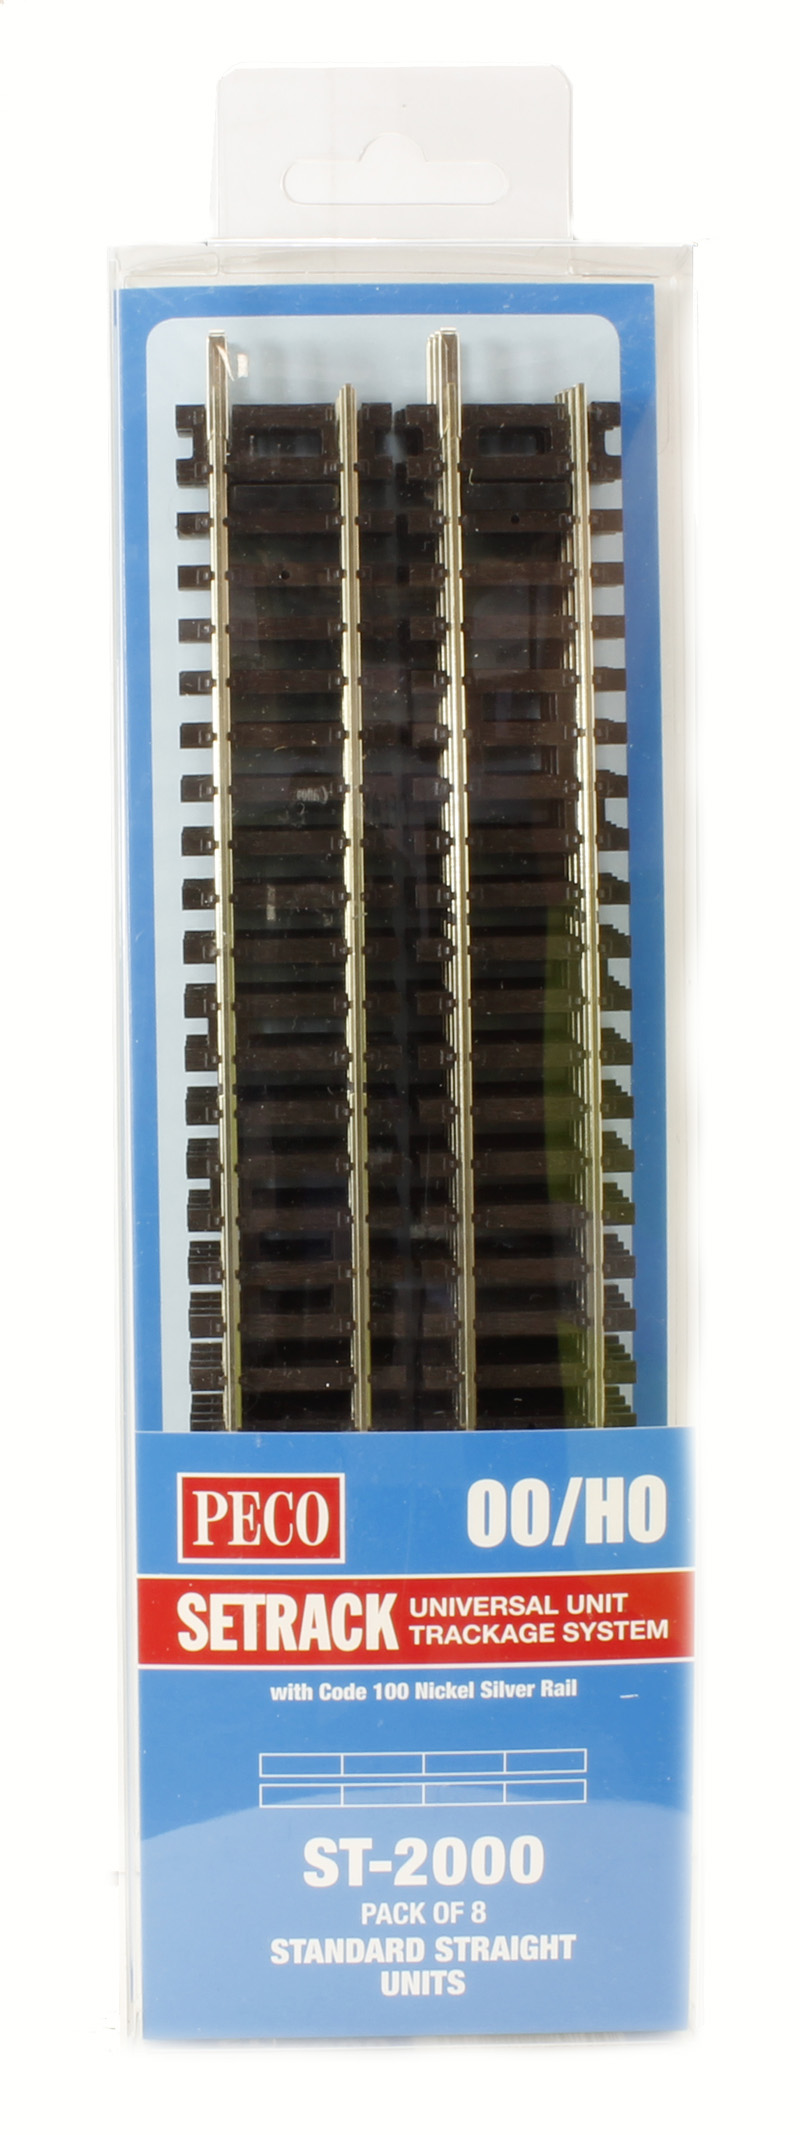 PECO SETRACK OO//HO ST-2000 PACK OF 8 STANDARD STRAIGHT UNITS CODE 100